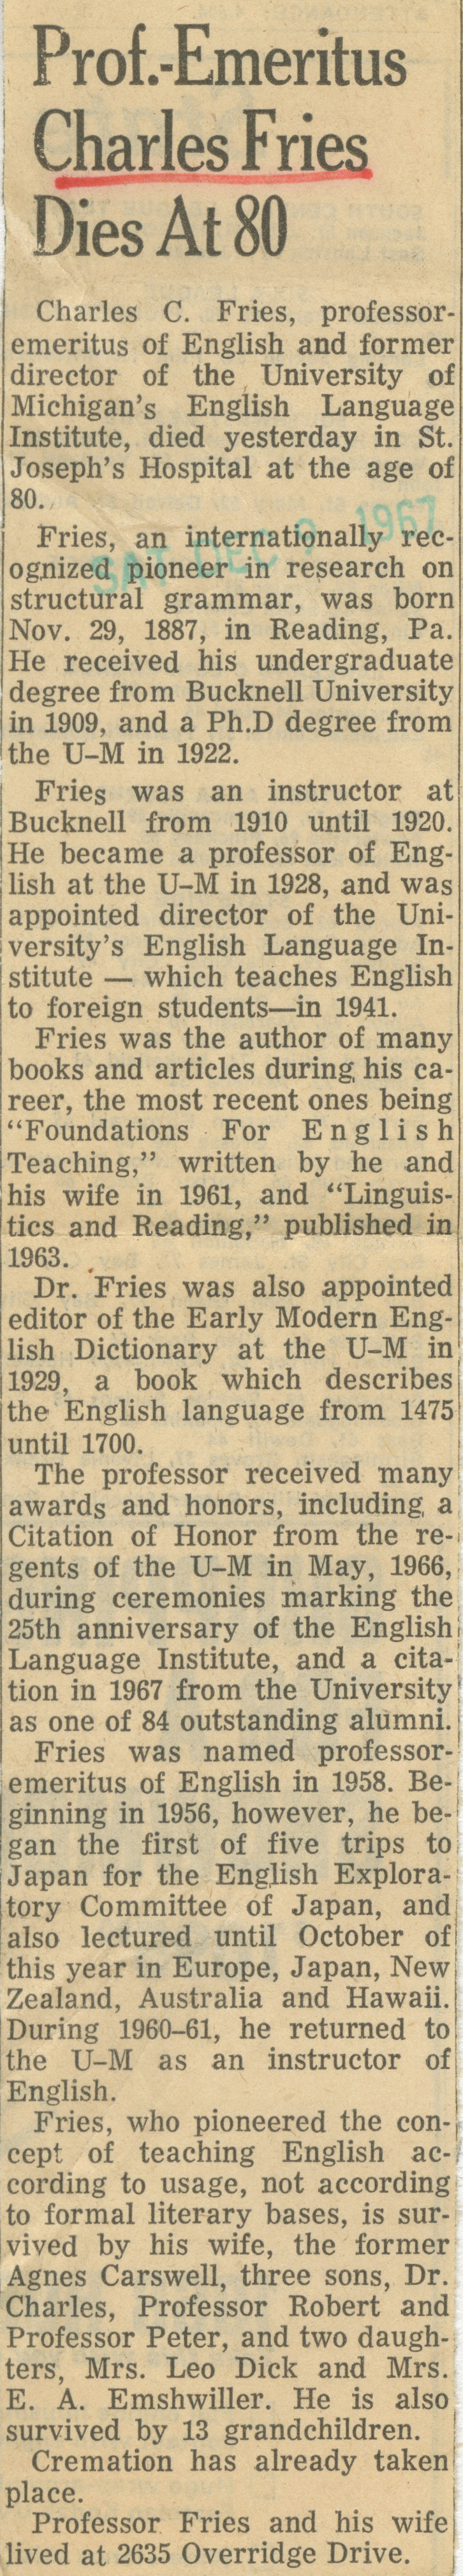 Prof. Emeritus Charles Fries Dies At 80 image